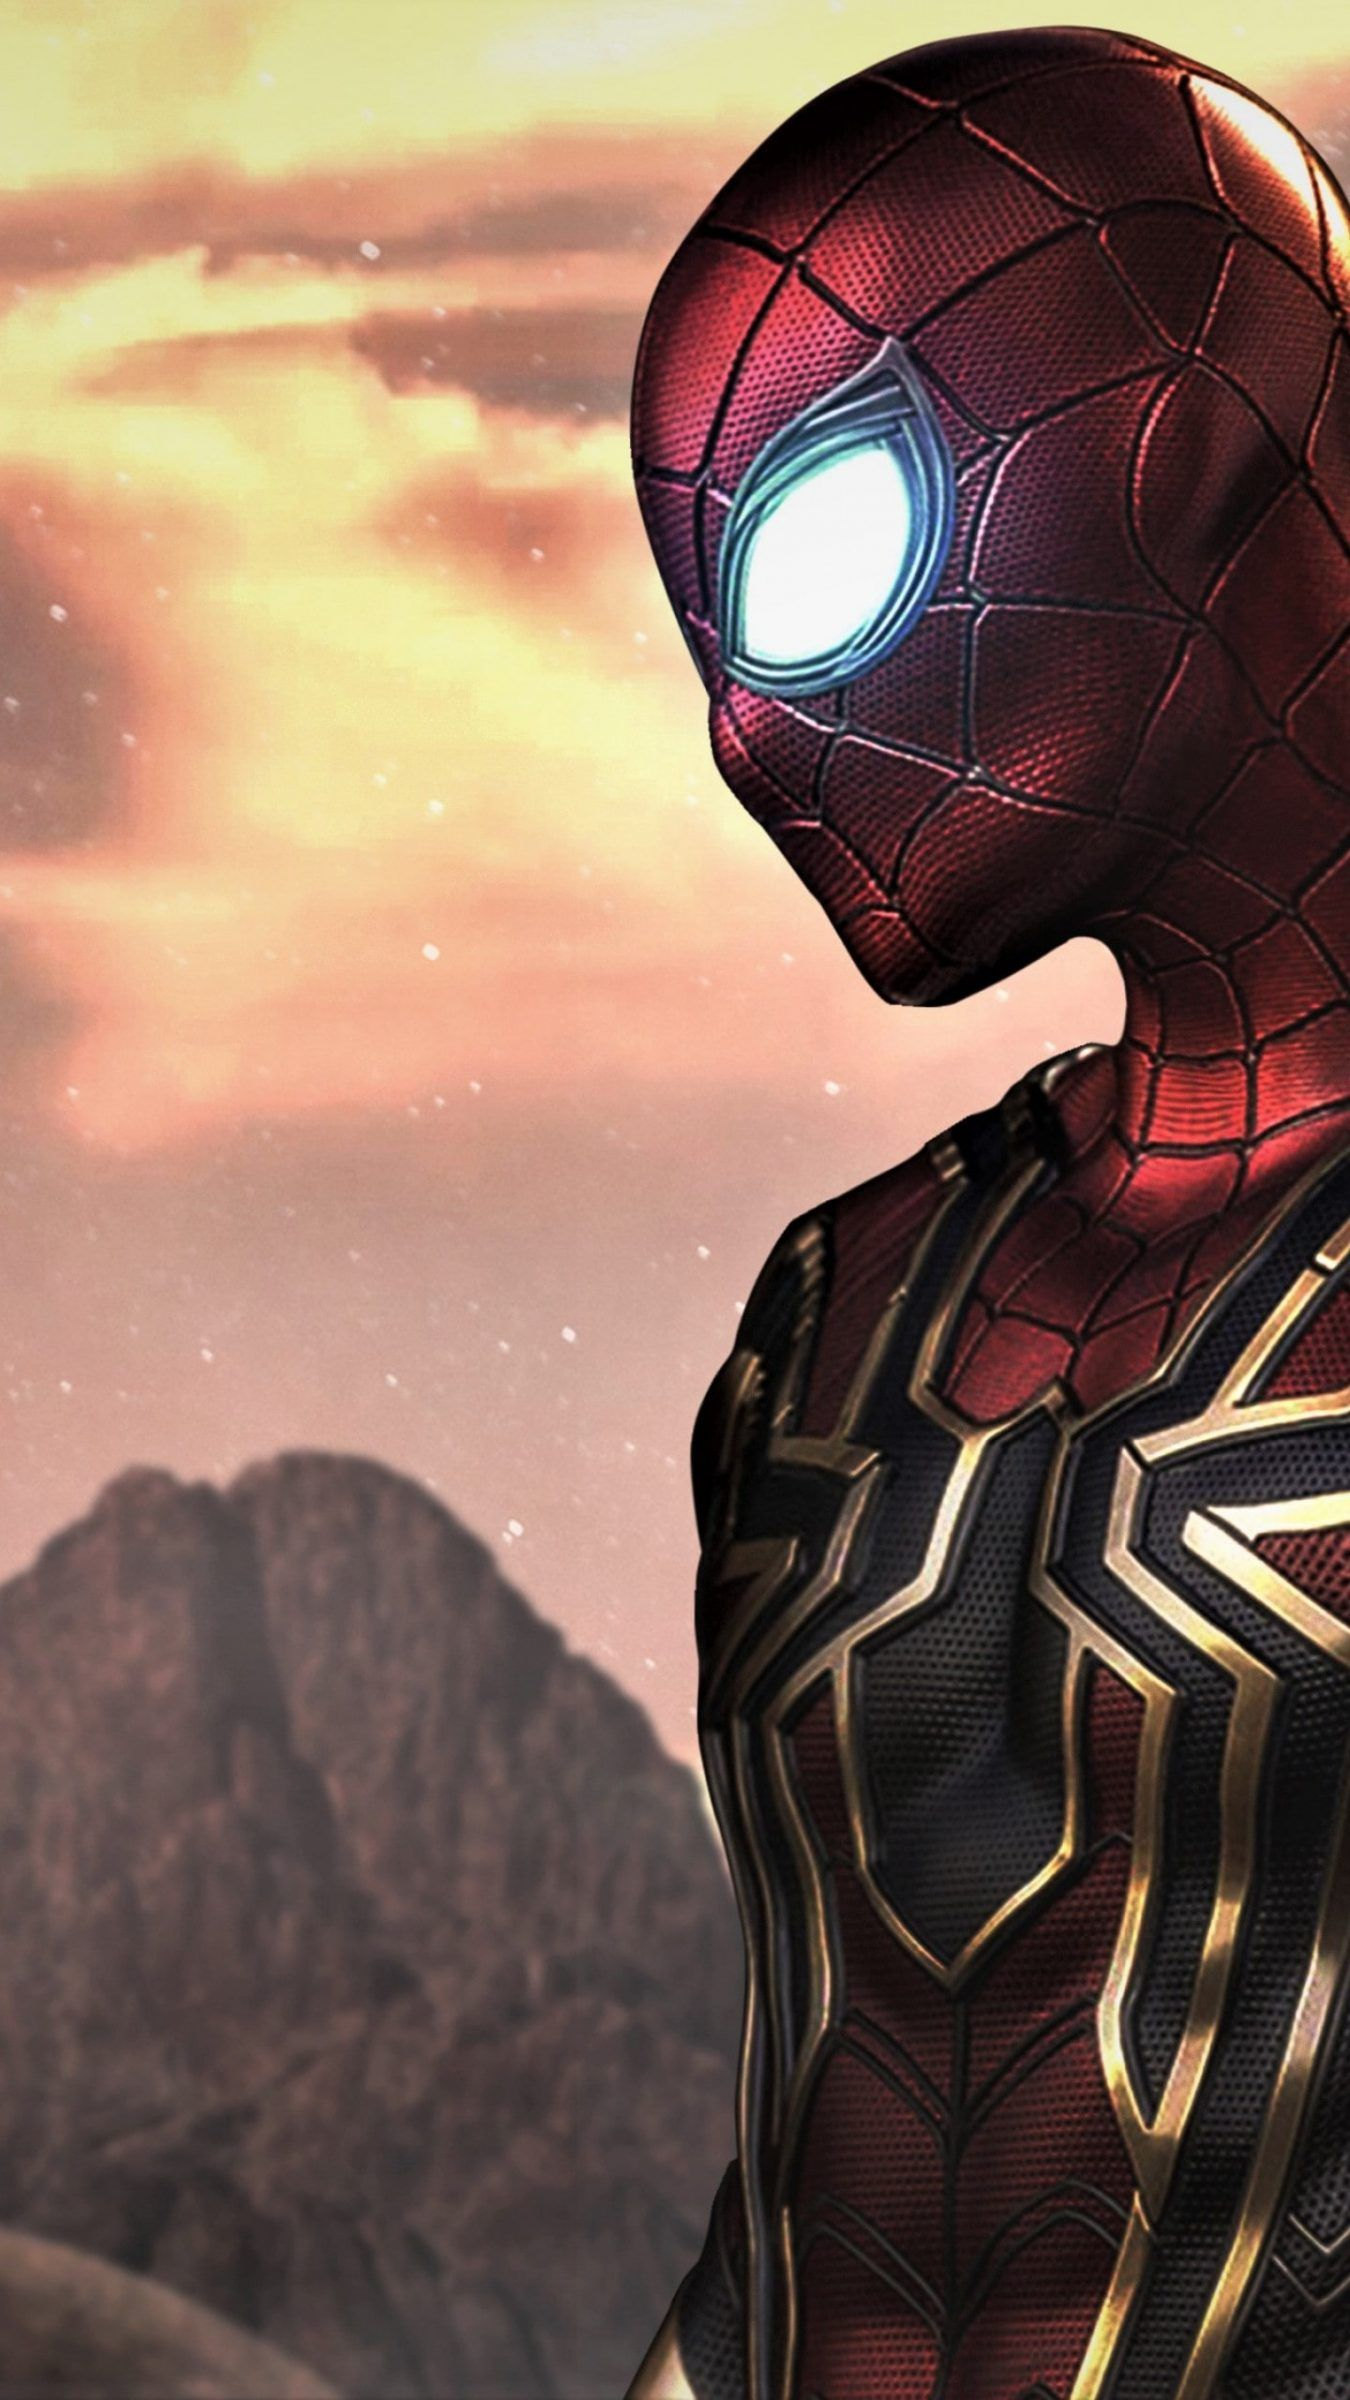 SpiderMan Far From Home (With images) Iron man